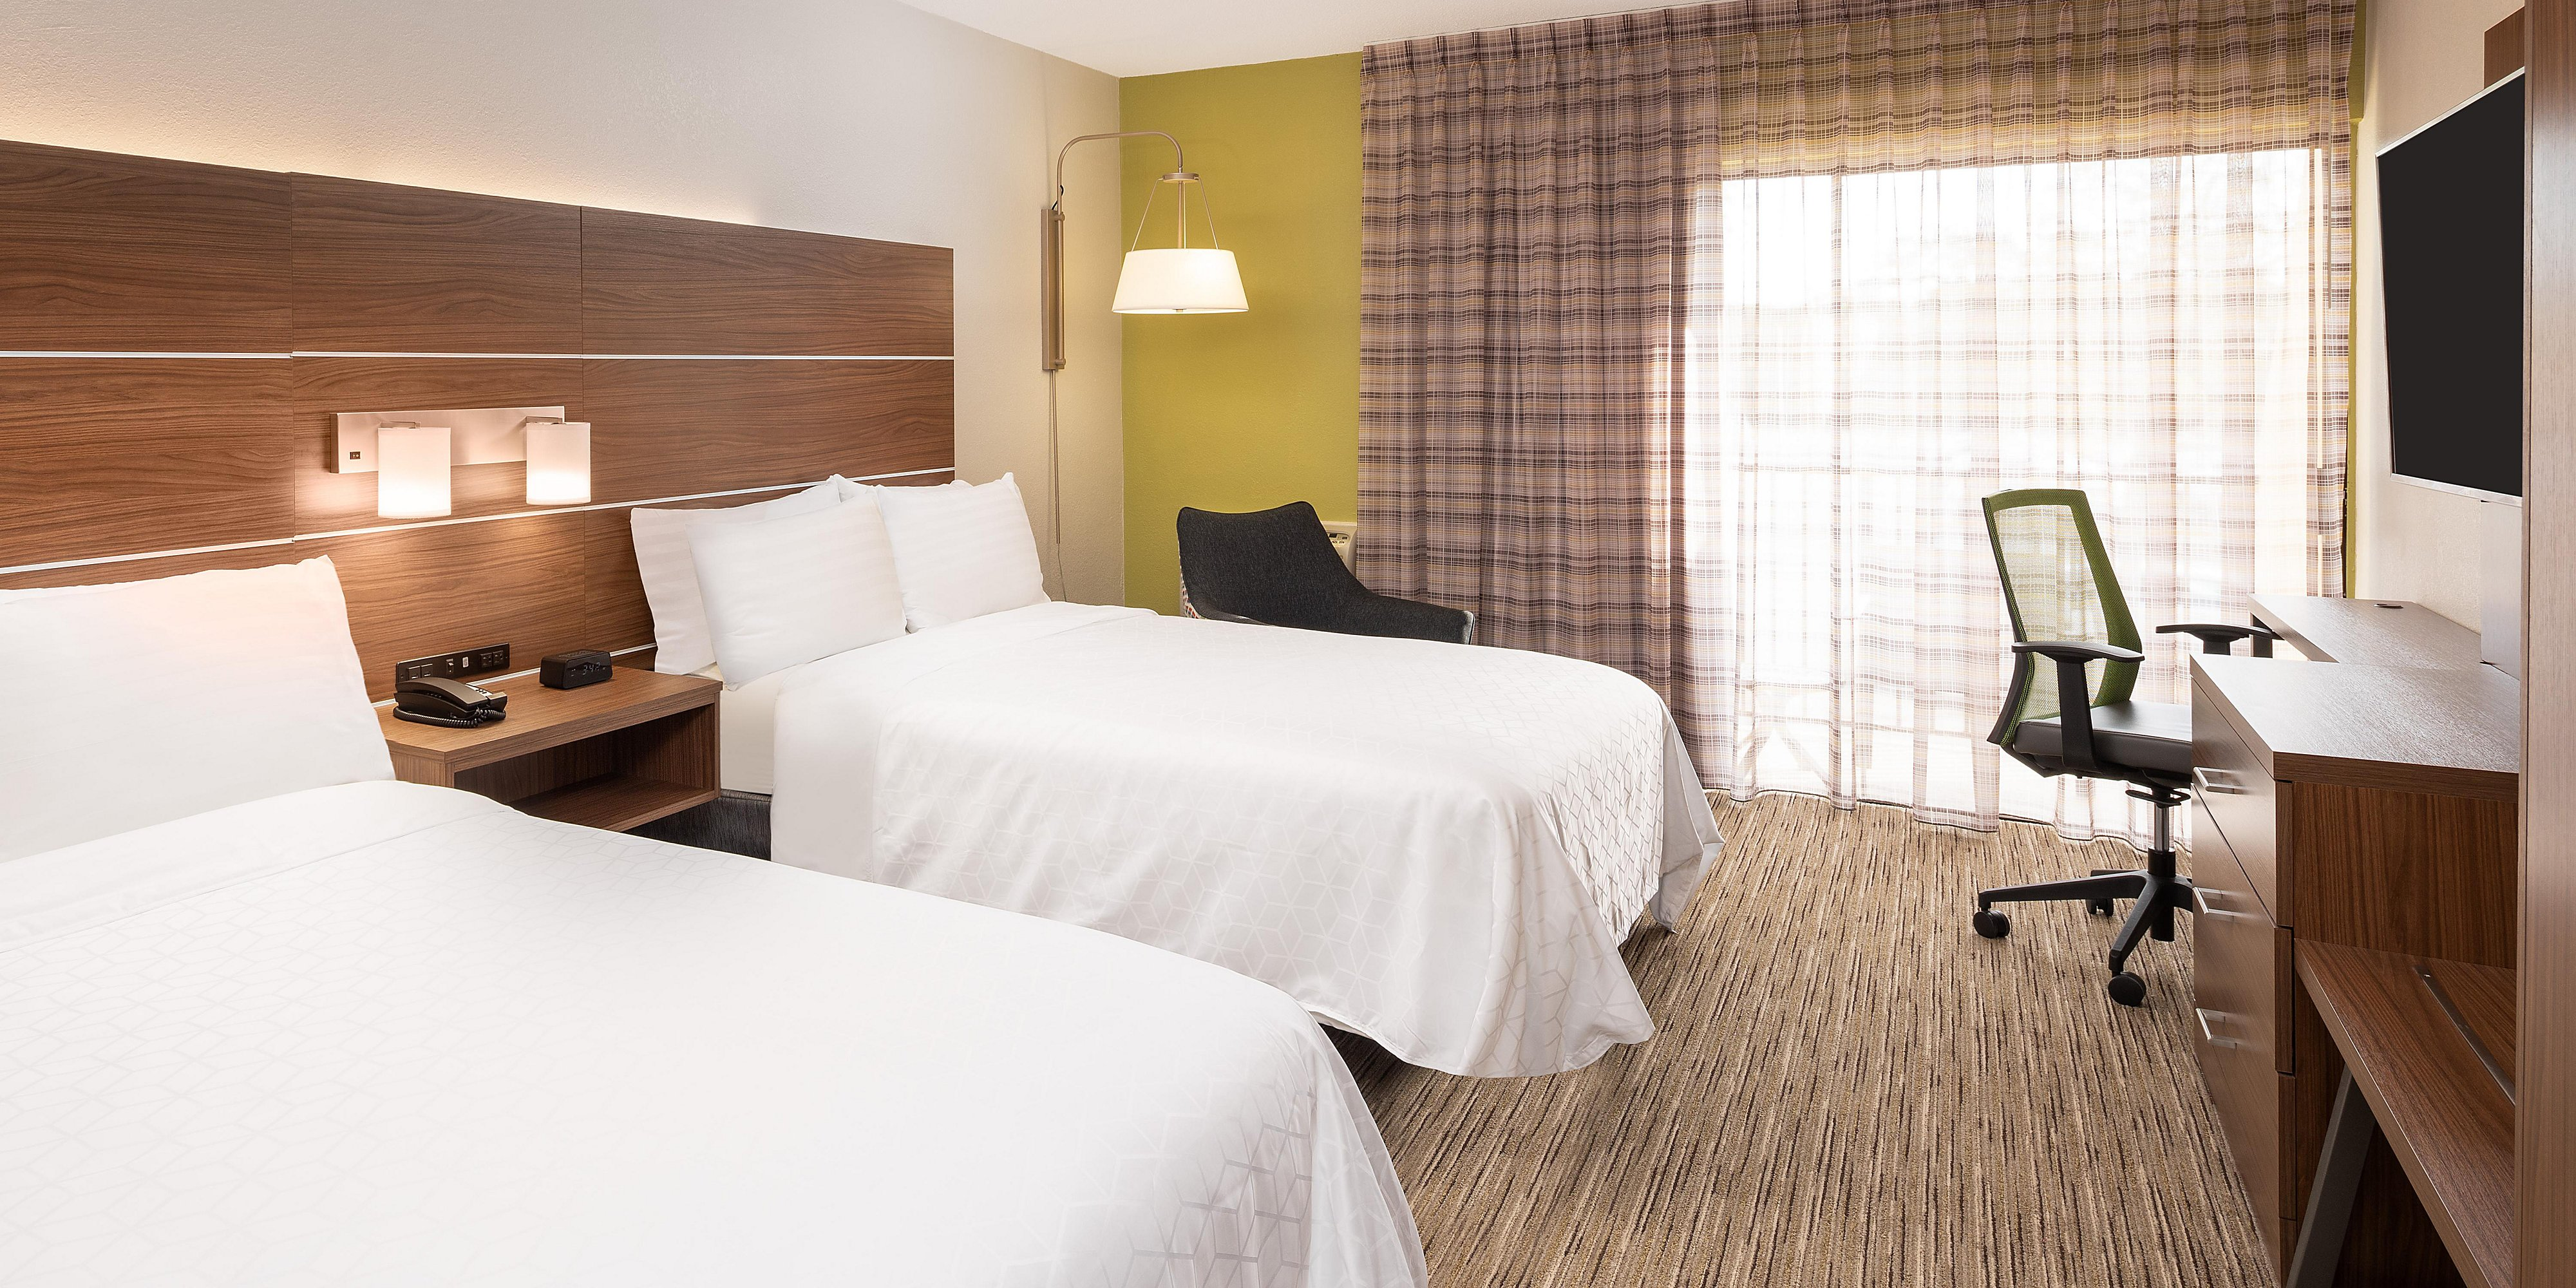 Hotels In West Boca Raton Fl Holiday Inn Express Boca Raton West